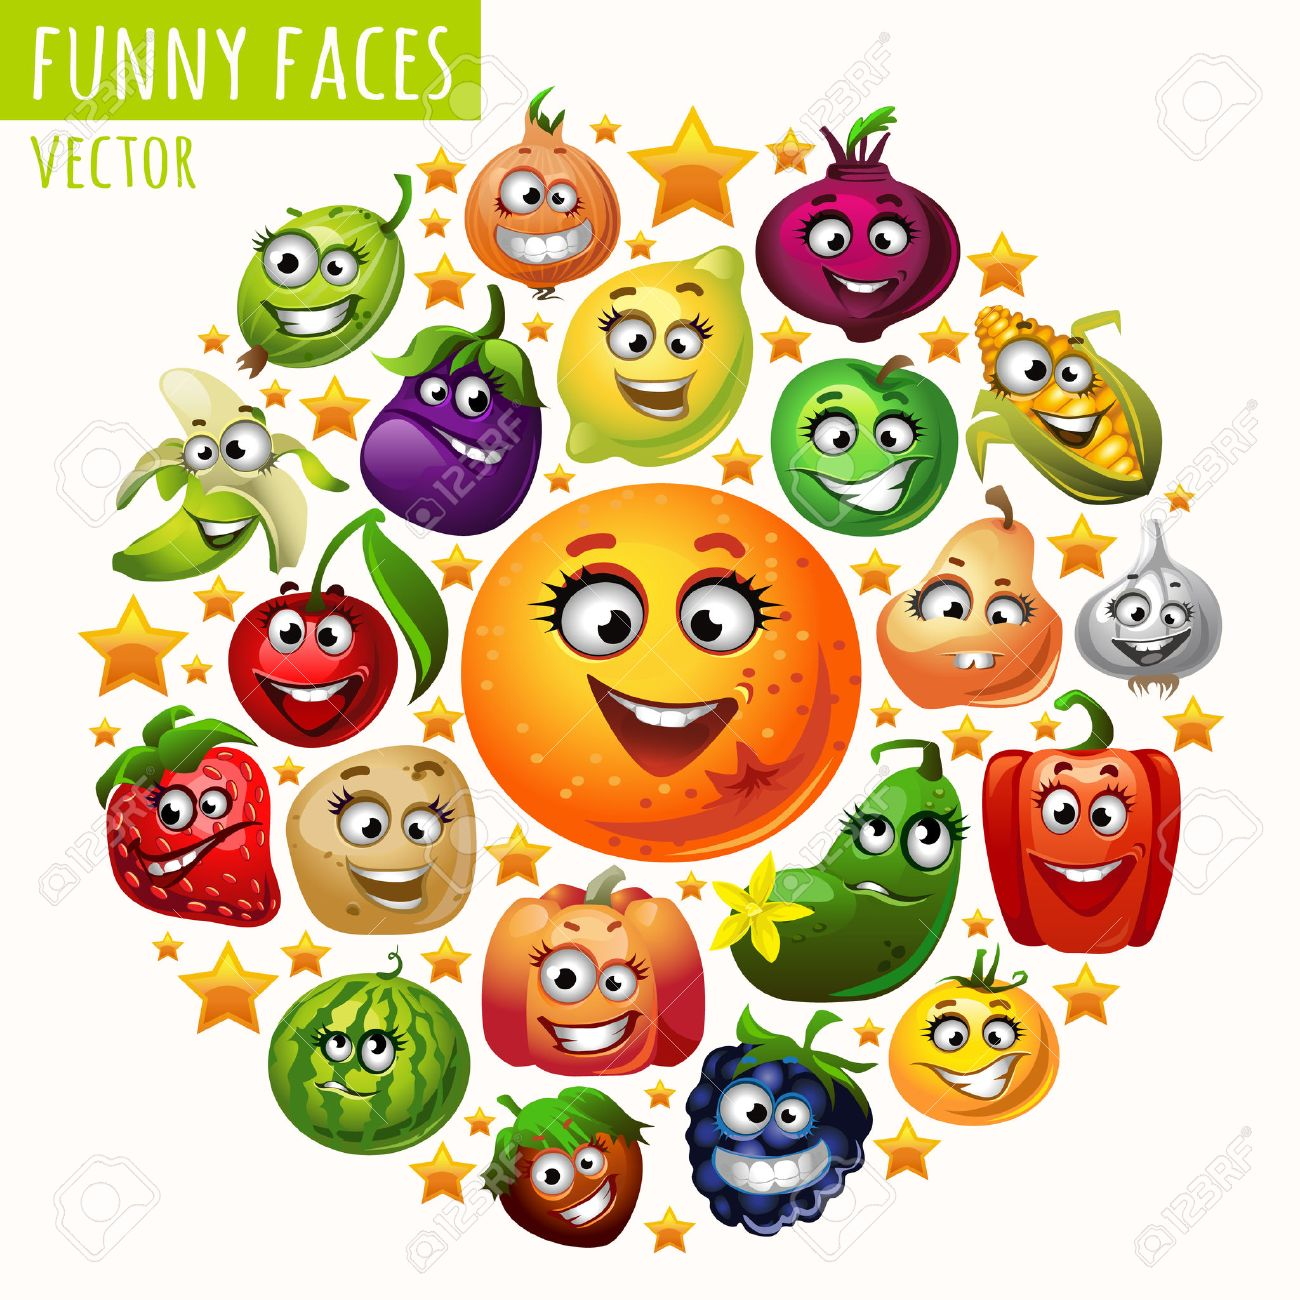 the circle of fruits and vegetables funny faces royalty free